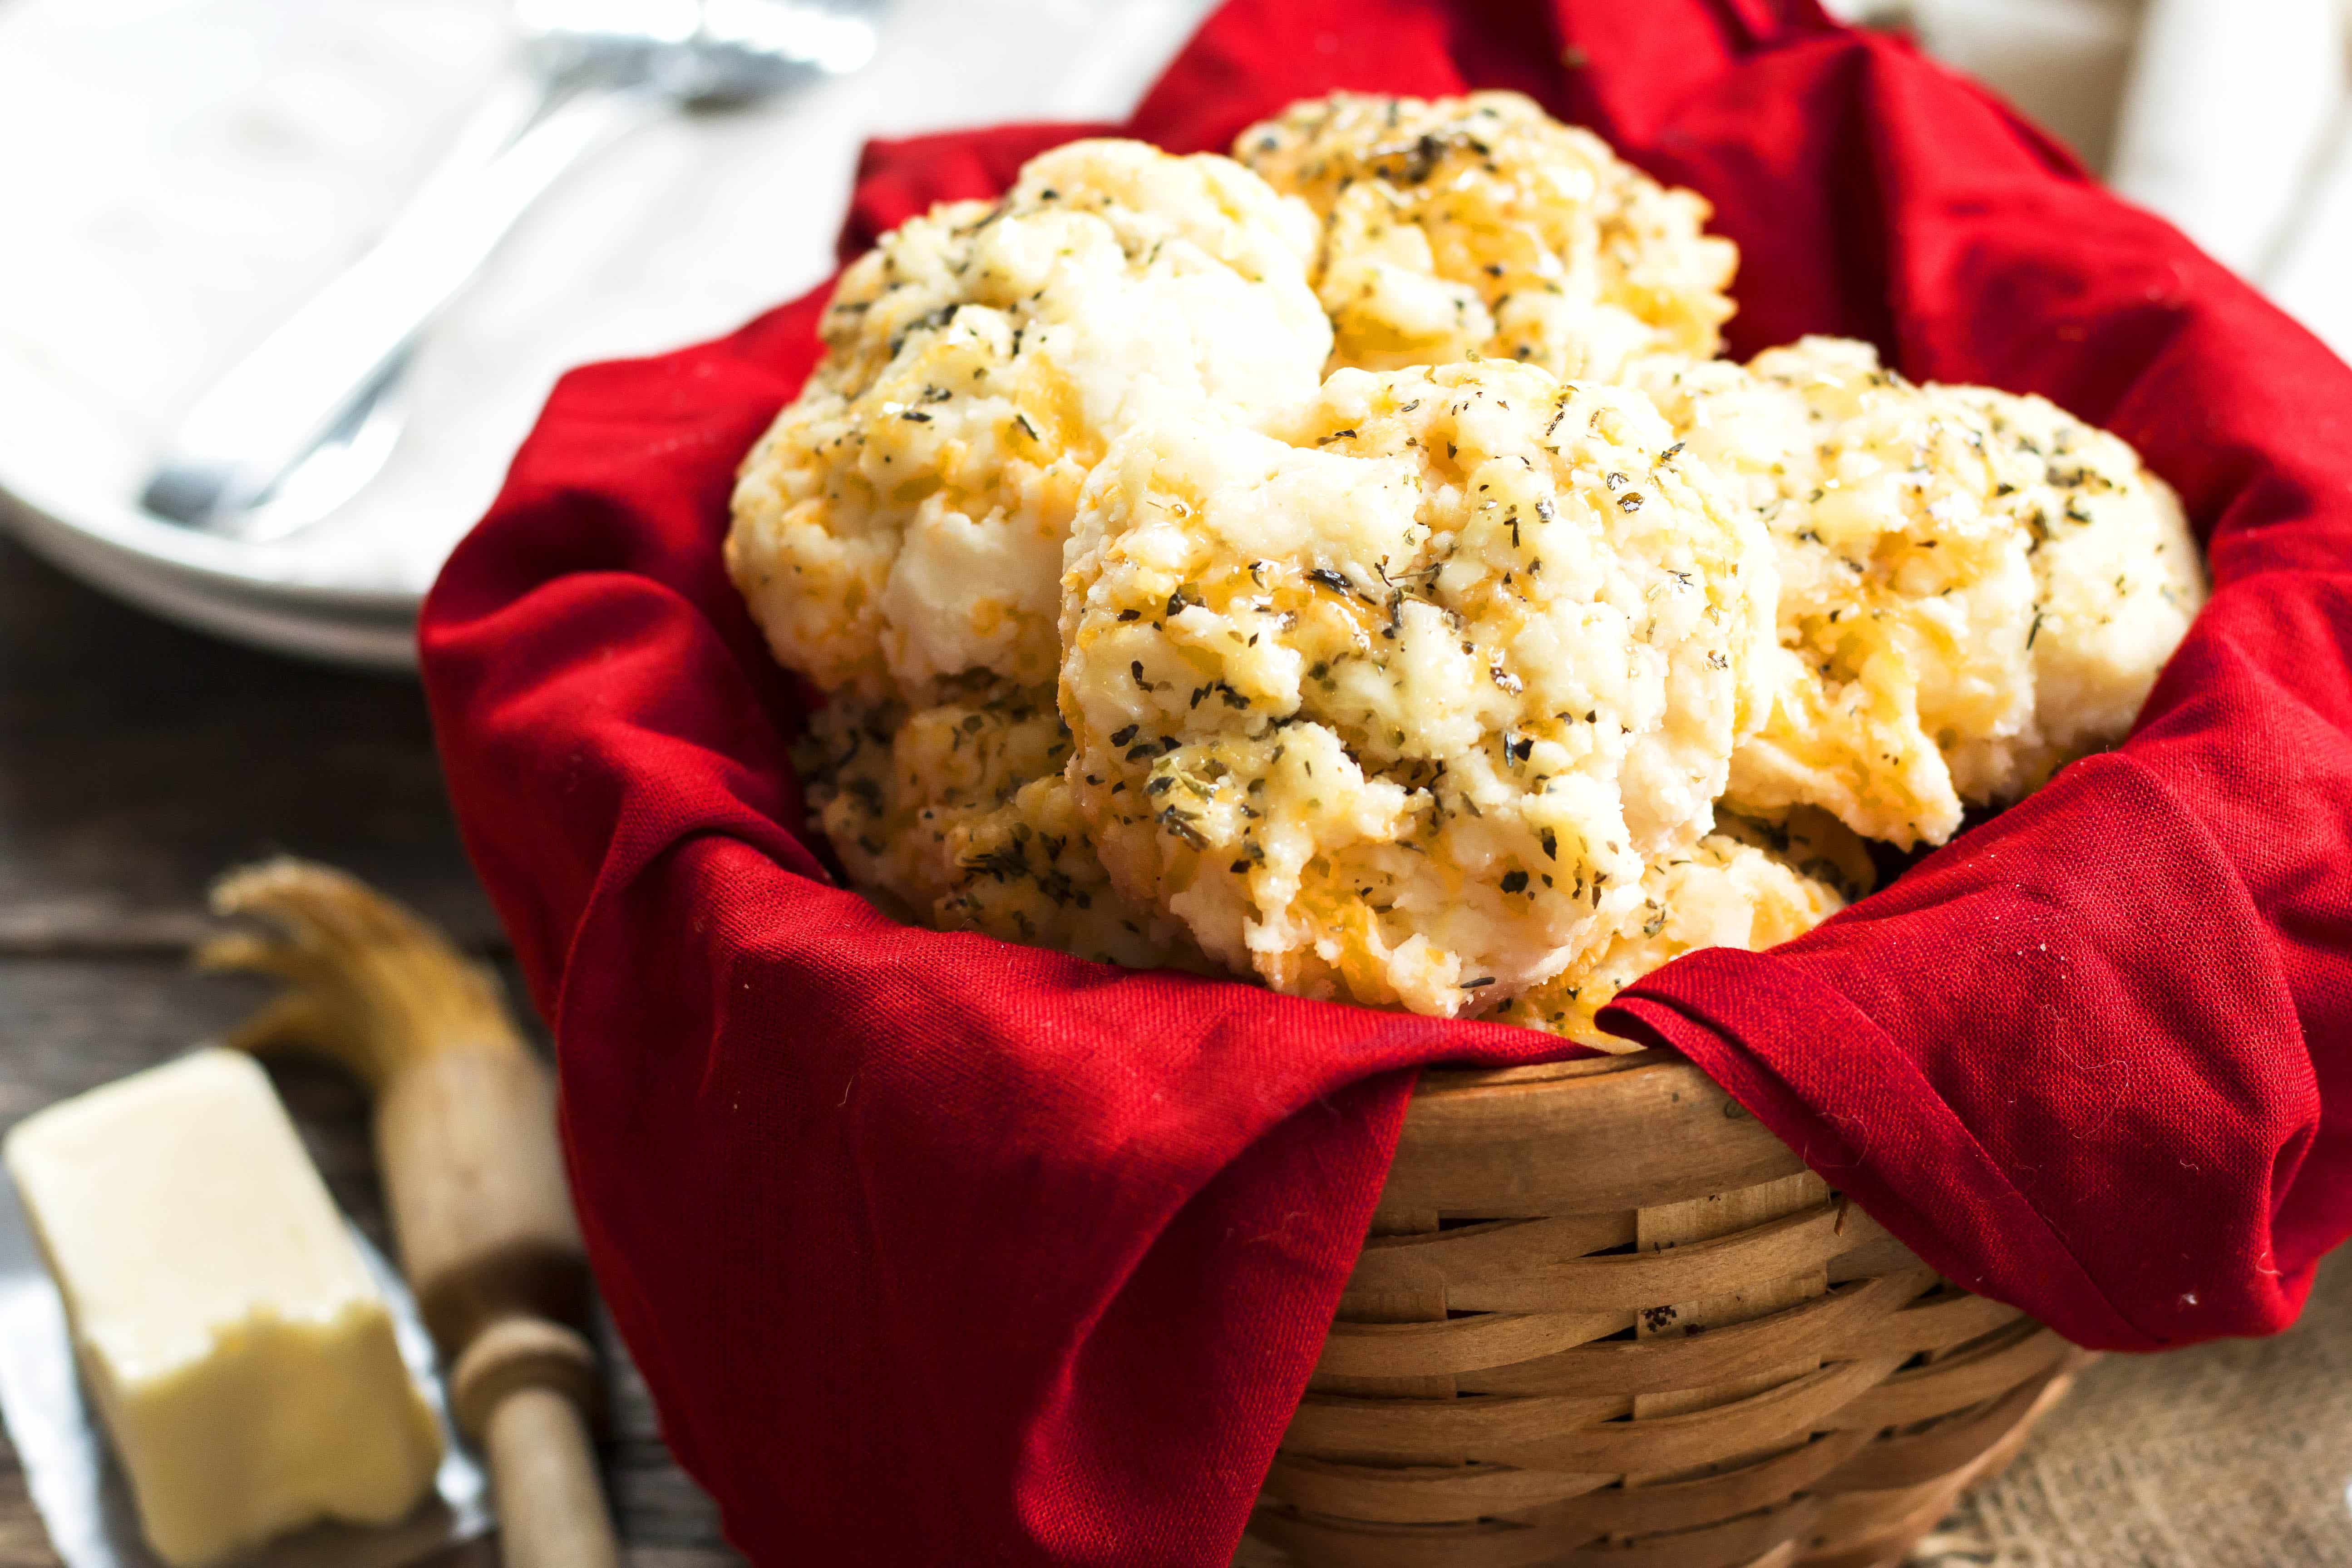 A basket filled collection of biscuits using a Bisquick biscuit recipe similar to Red Lobster's for a delicious dinner.